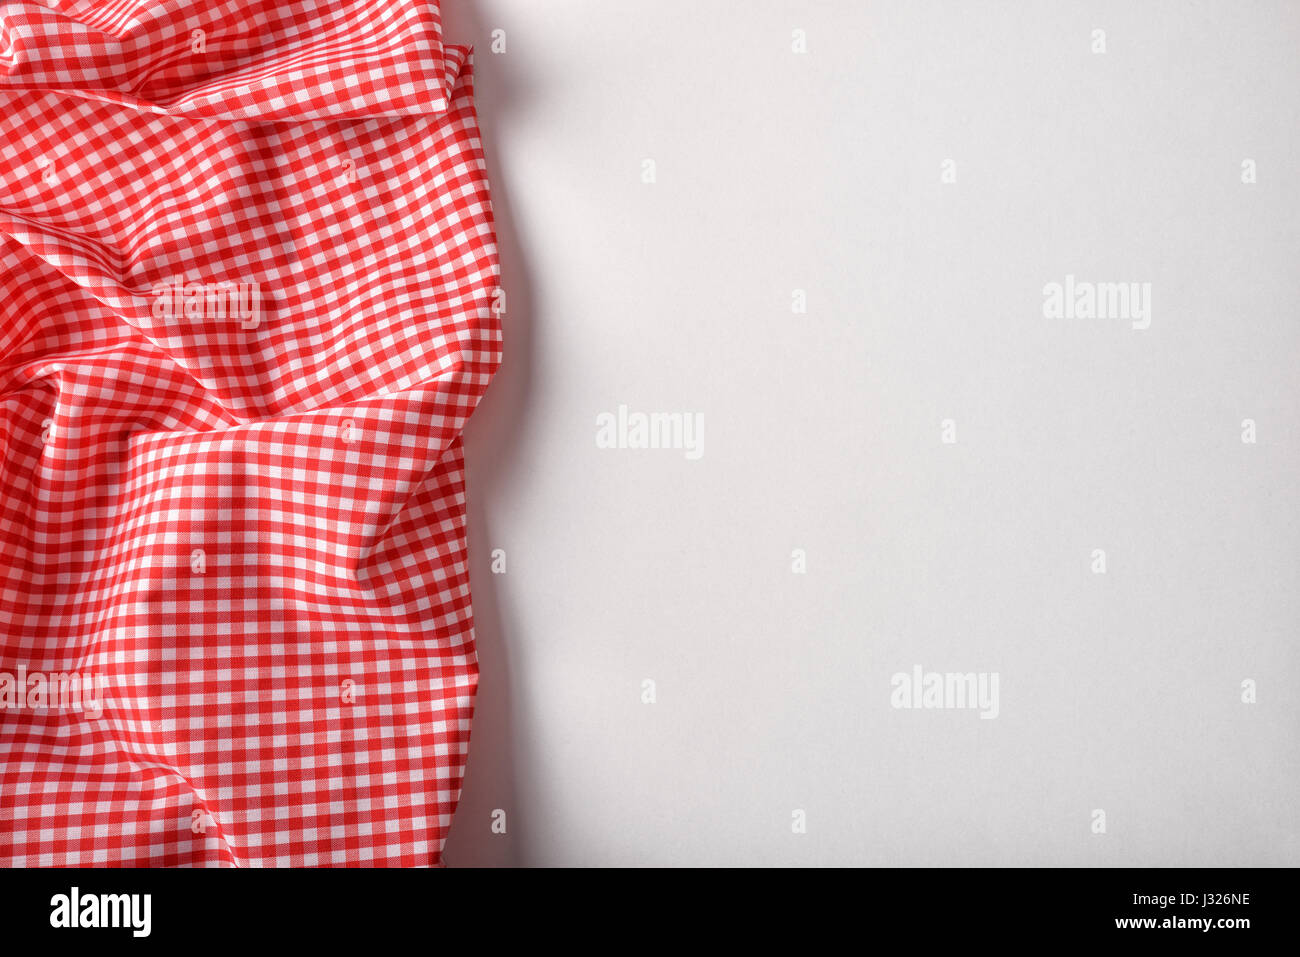 White table top view Post It Red And White Checkered Fabric On White Table Top View Horizontal Composition Alamy Red And White Checkered Fabric On White Table Top View Horizontal